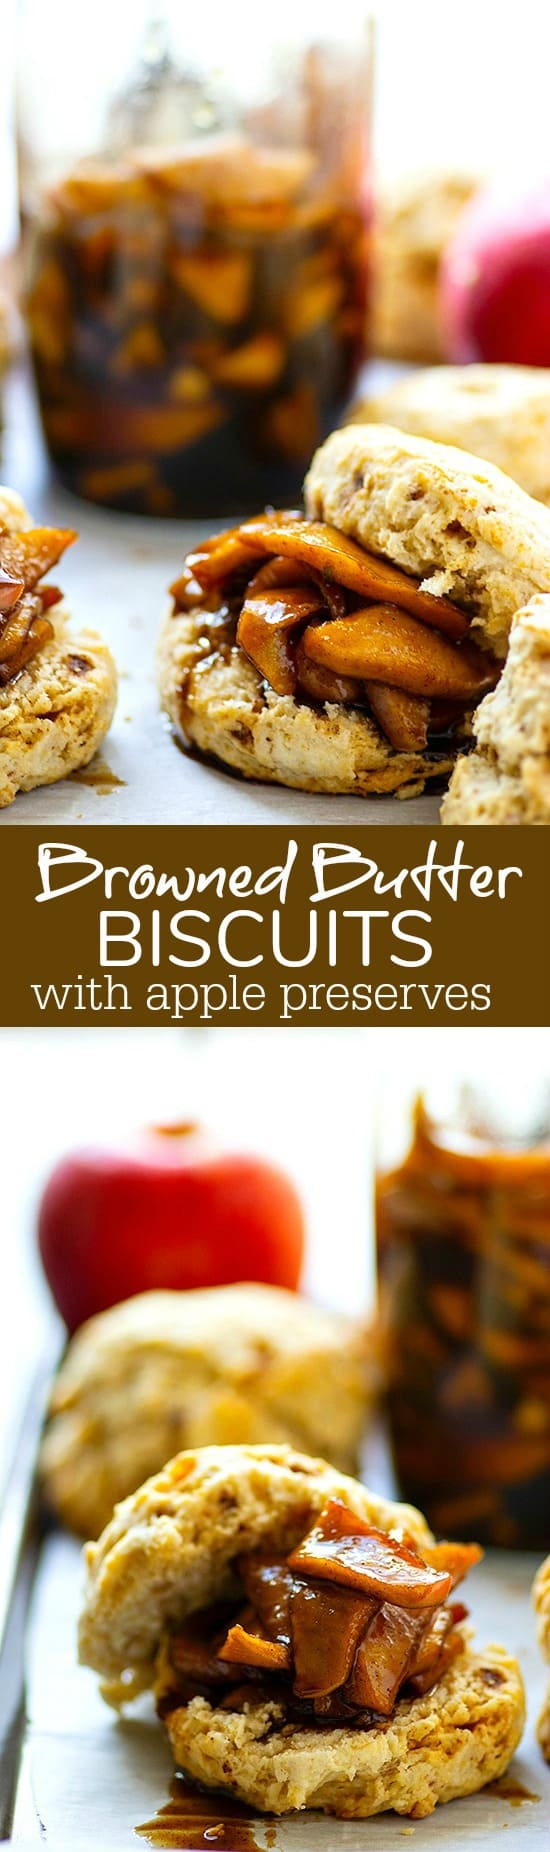 Browned Butter Biscuits with Apple Preserves - Deeply flavorful and incredibly flaky browned butter biscuits are the ultimate fall indulgence piled high with tons of homemade apple preserves!